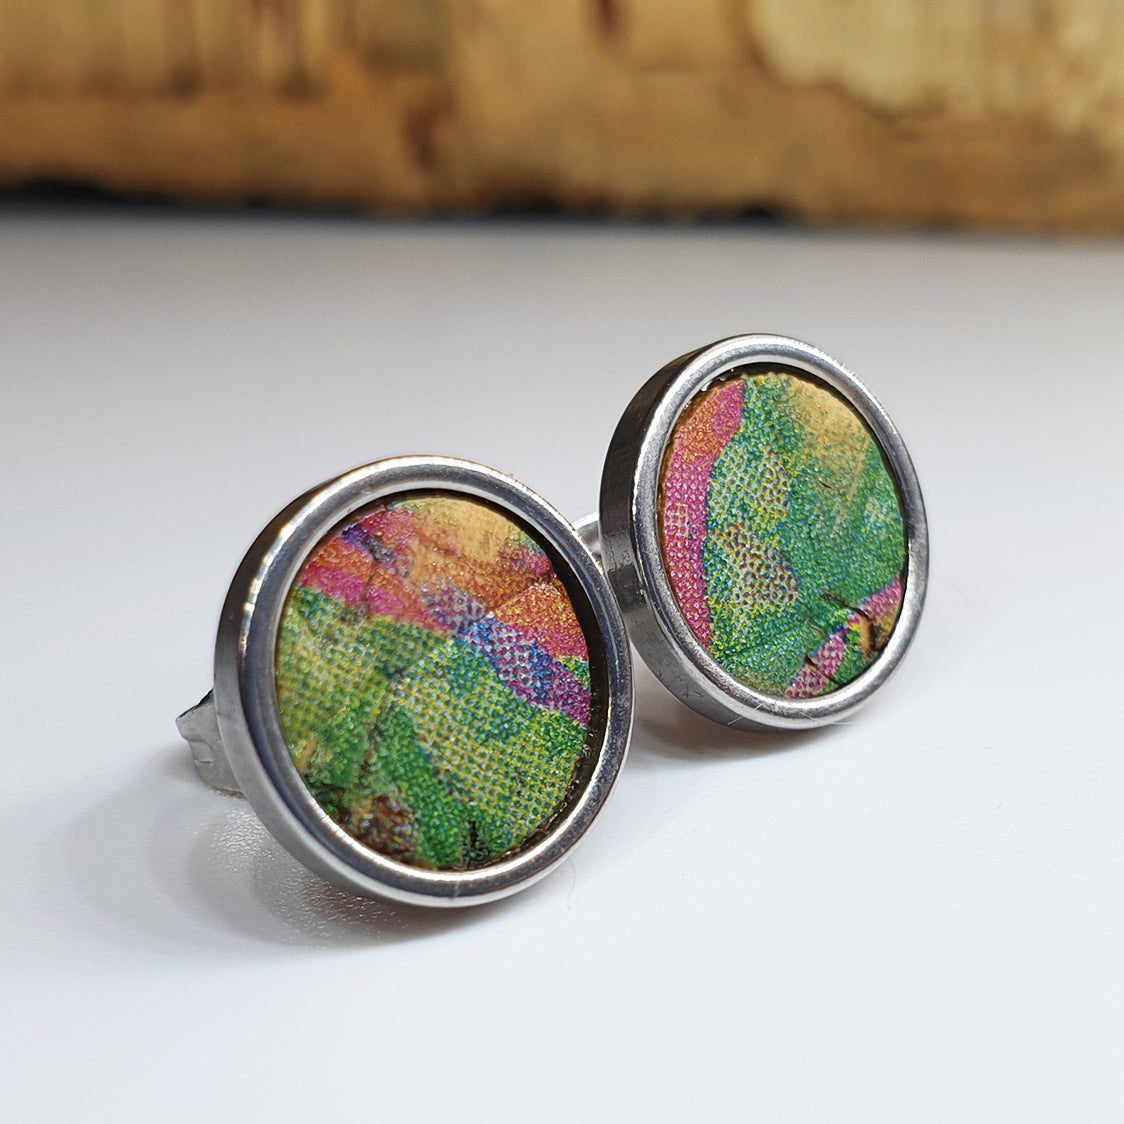 Fabrikk Cork Stud Earrings | Large | Cosmic Splash Green | Vegan Leather